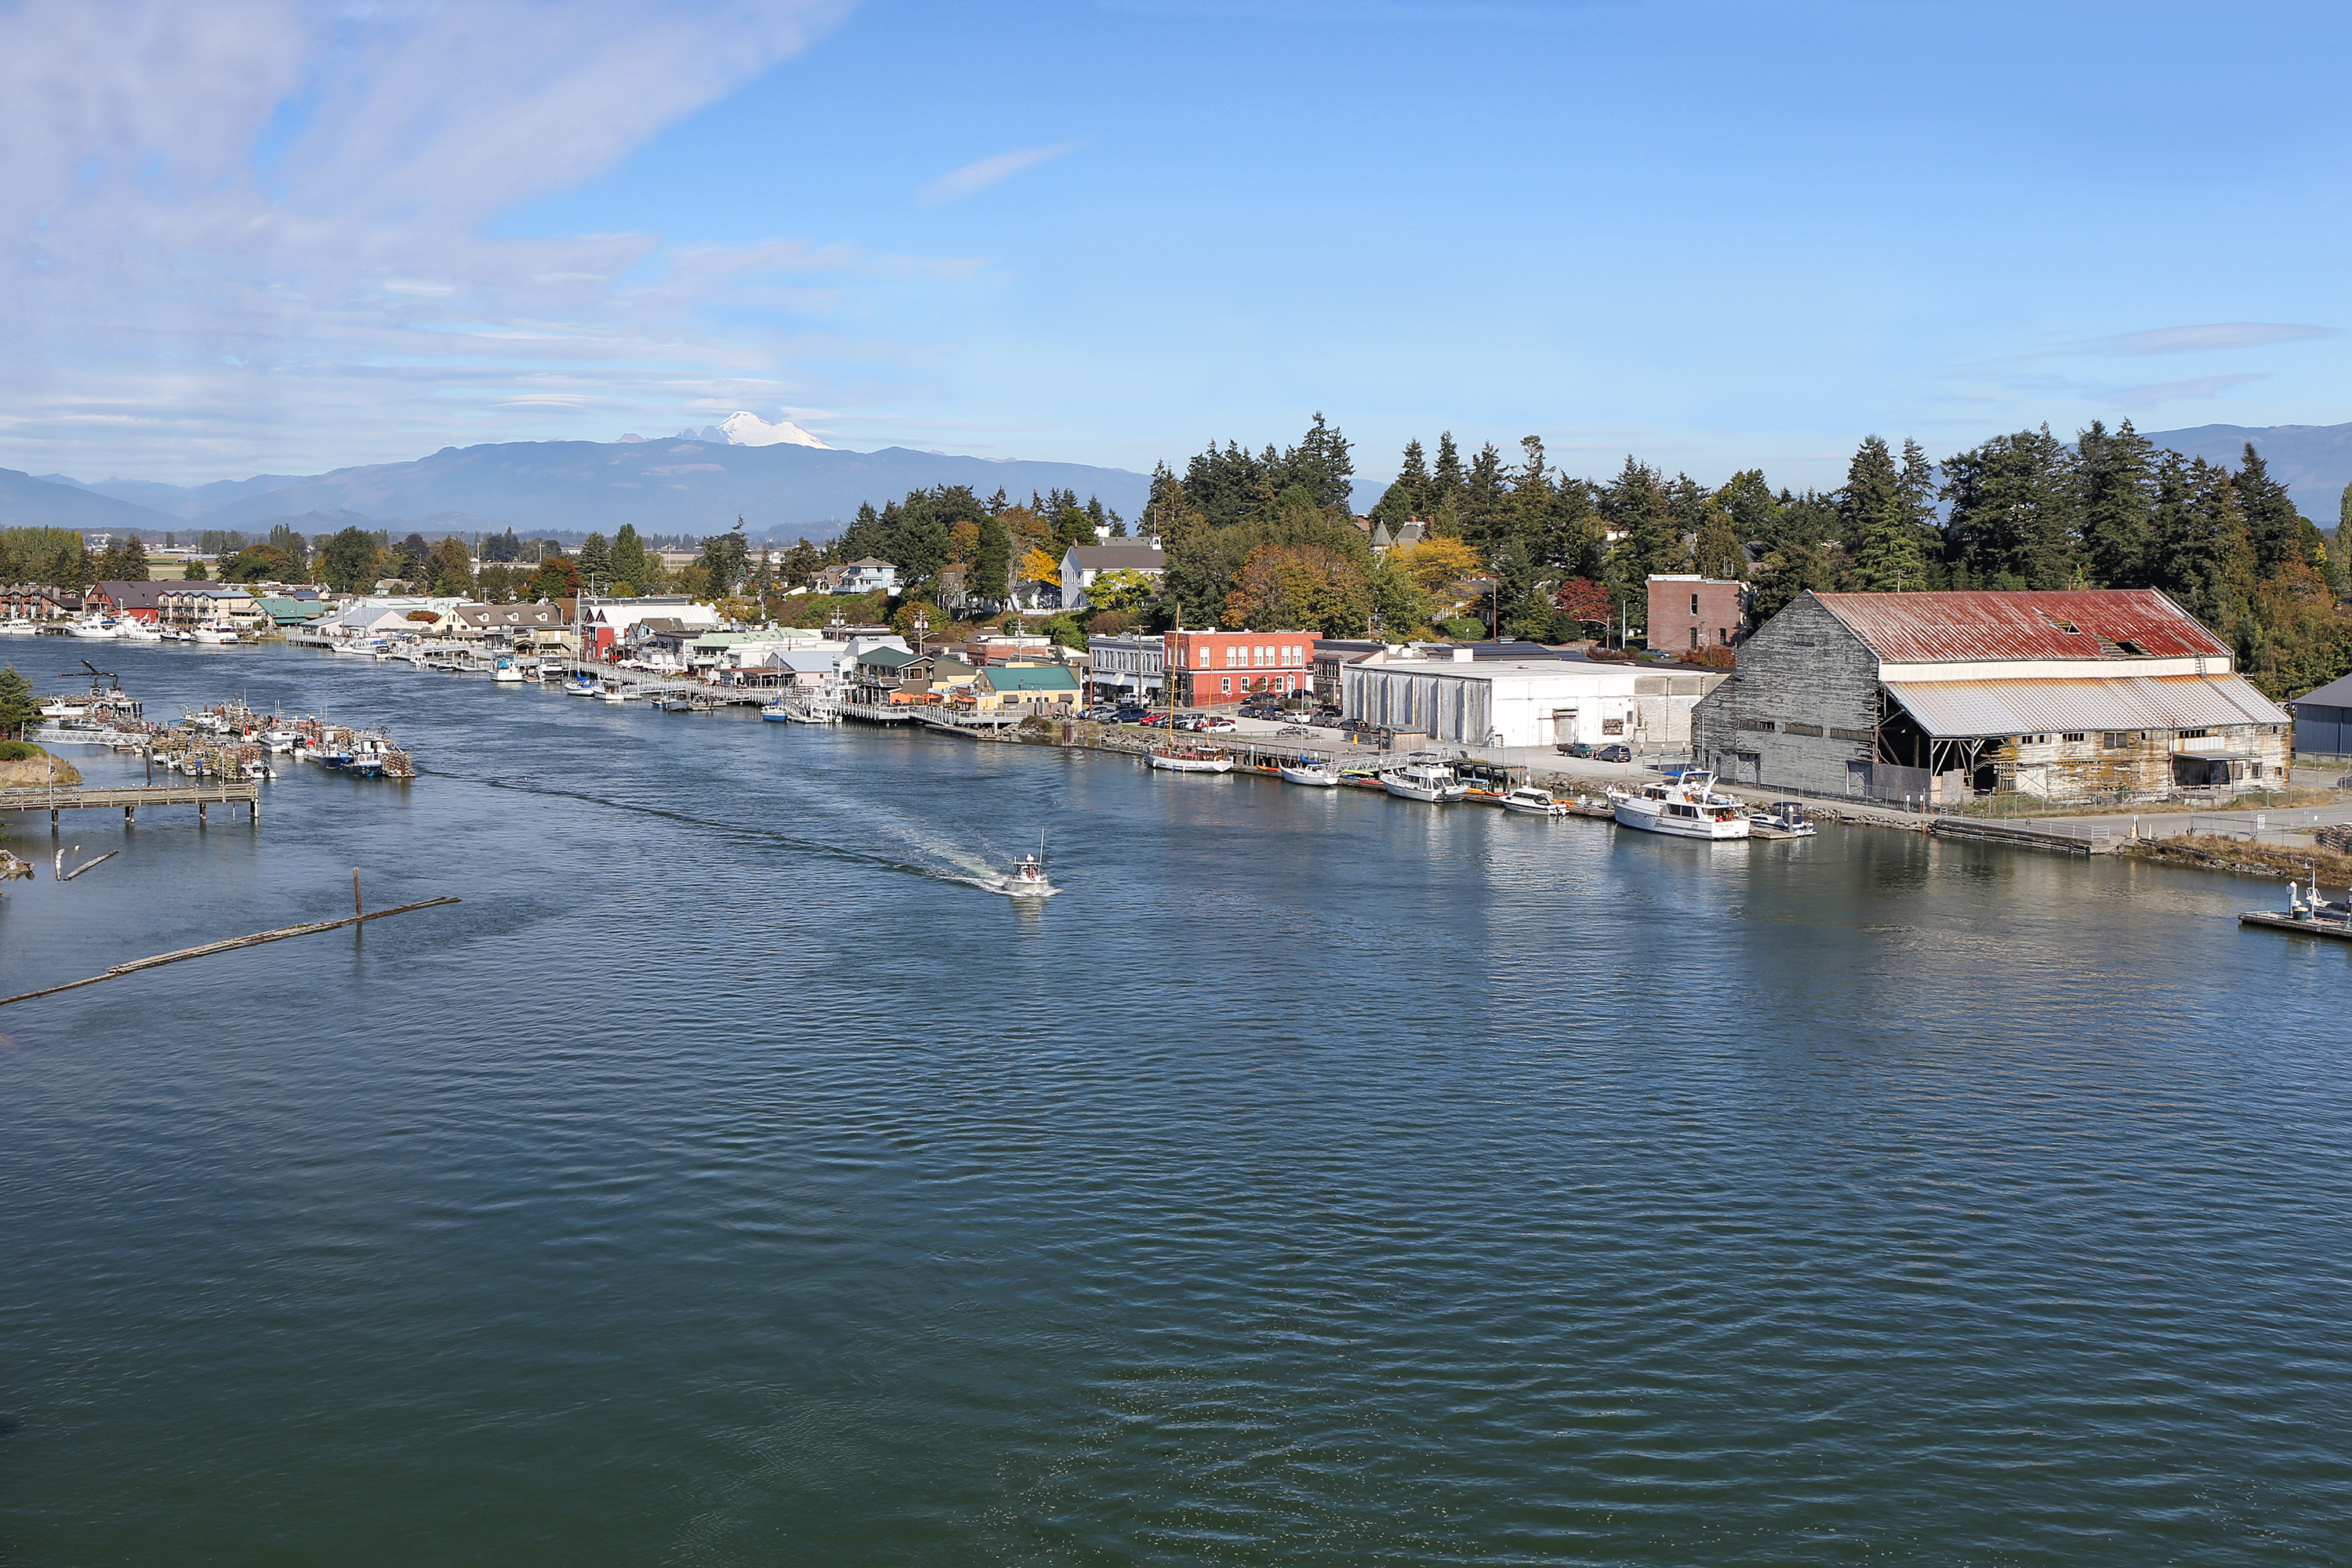 In the foreground is a body of water near Seattle. Lining the body of water are multiple houses and trees. In the distance are mountains.